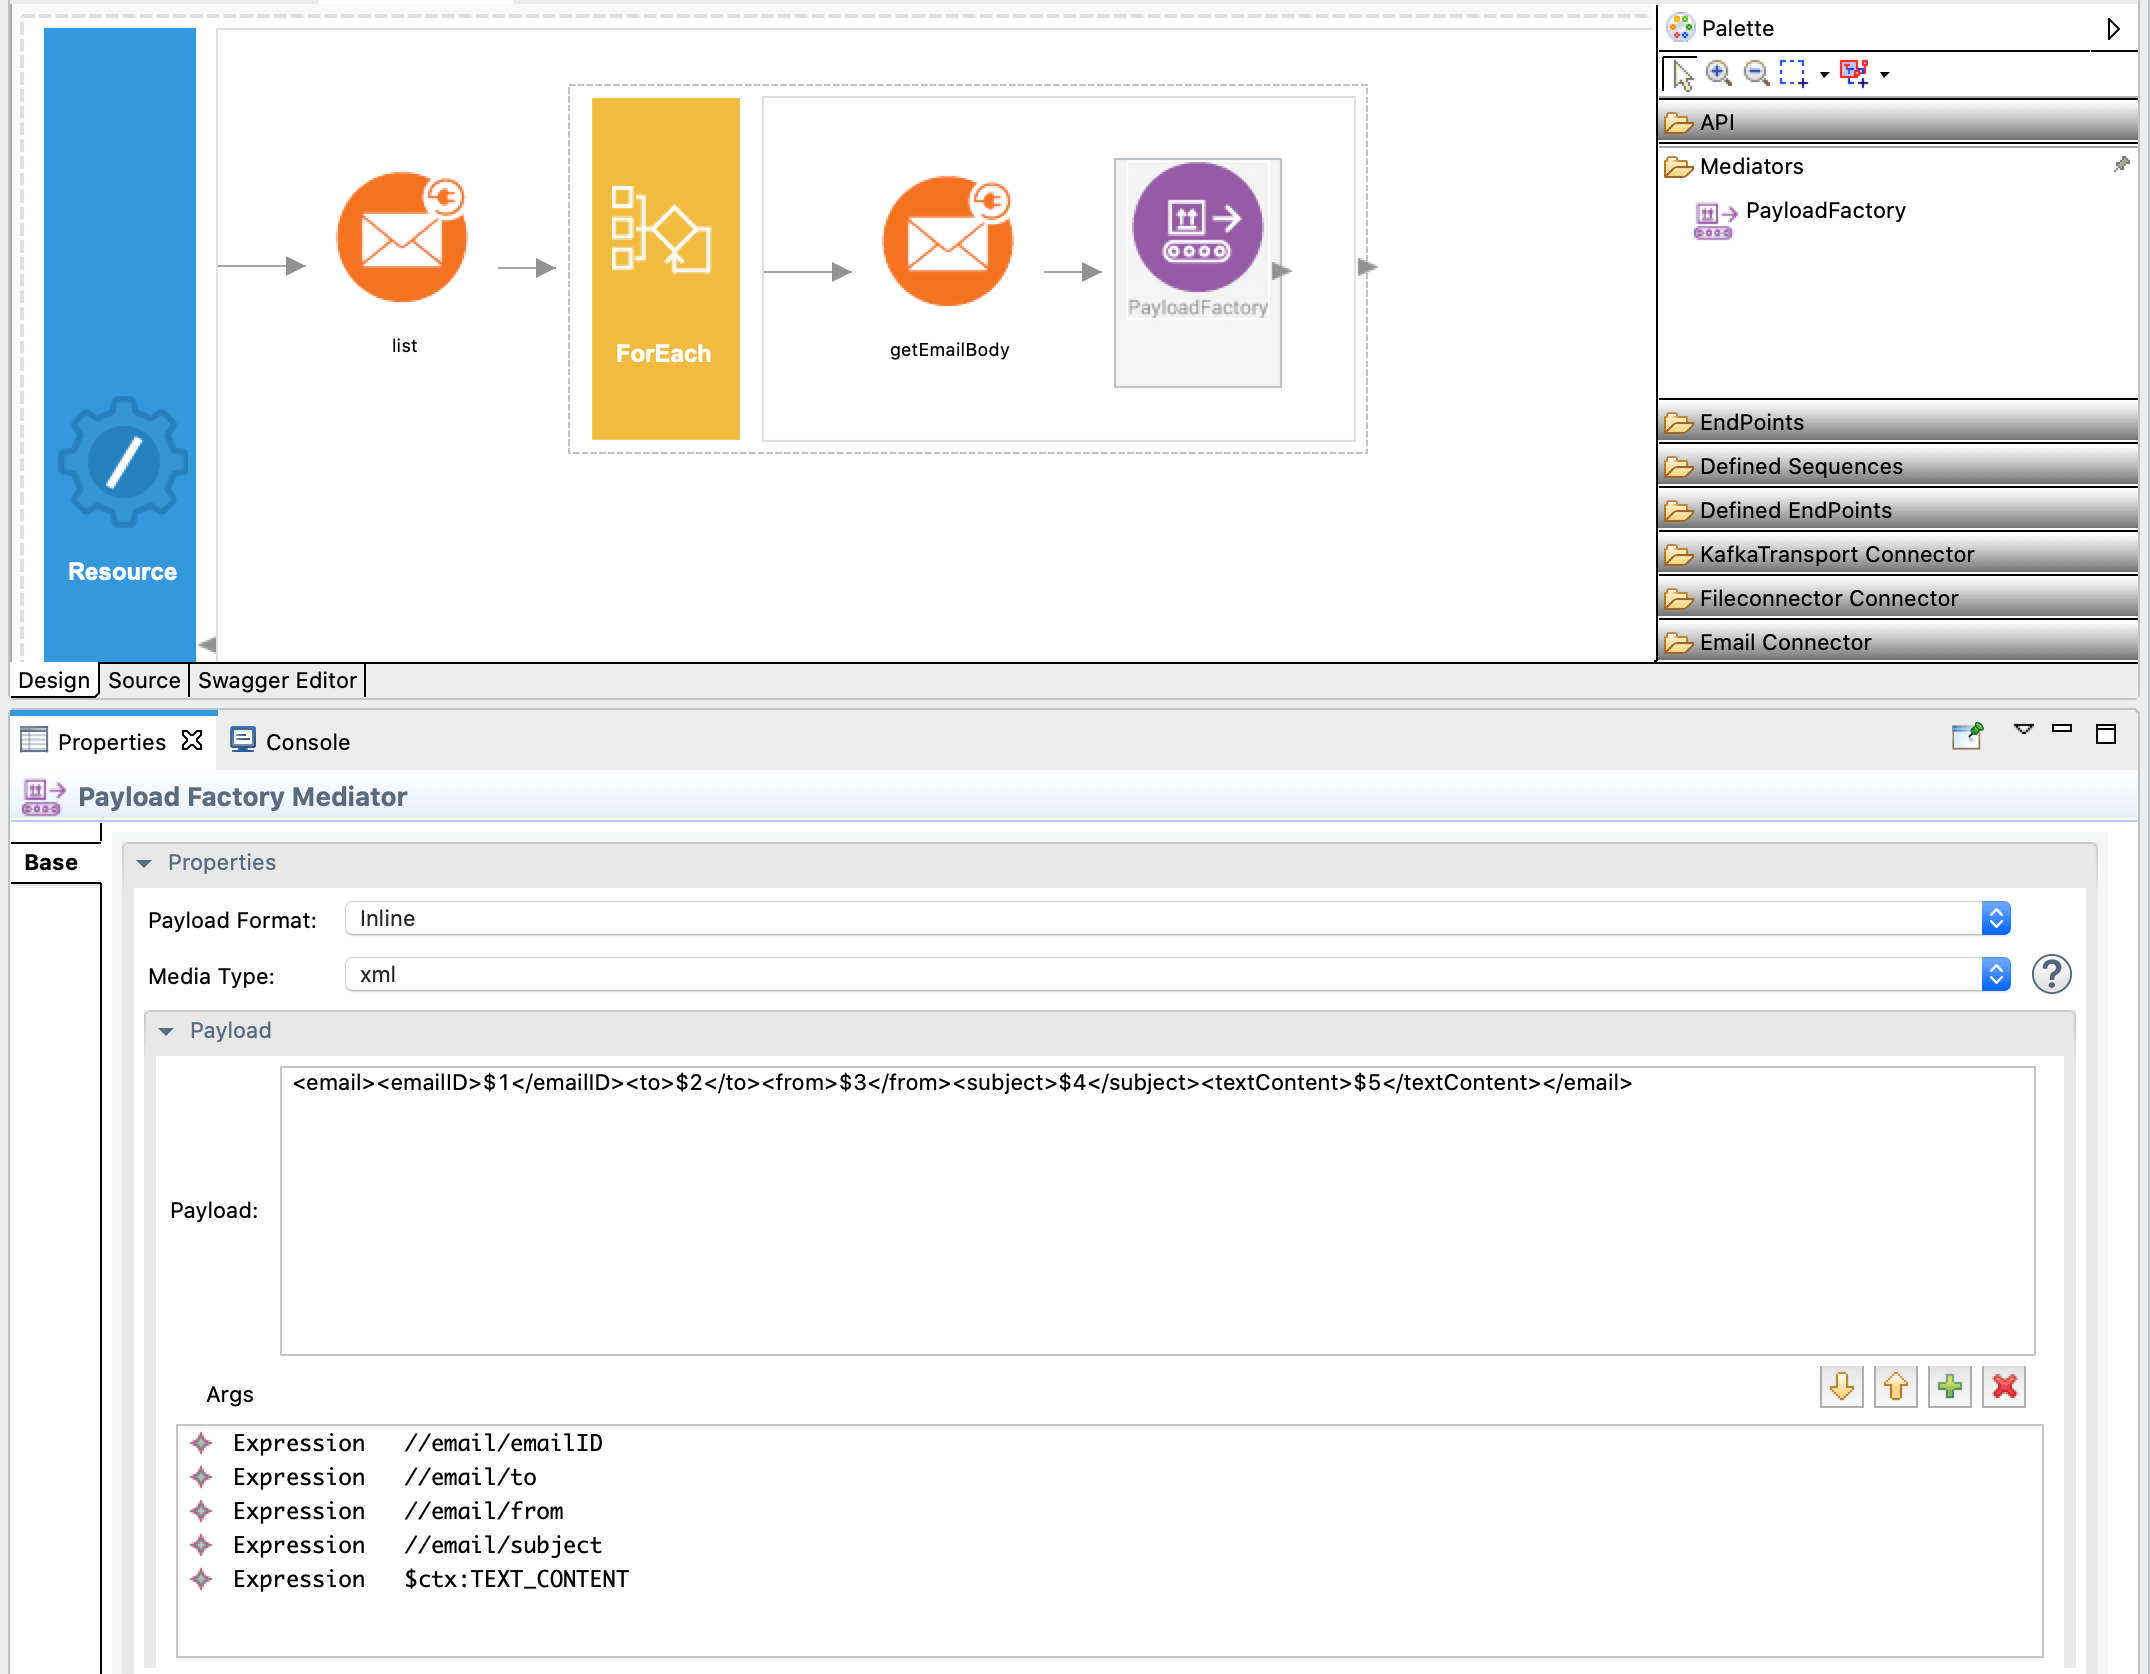 Adding payload facotry mediator.